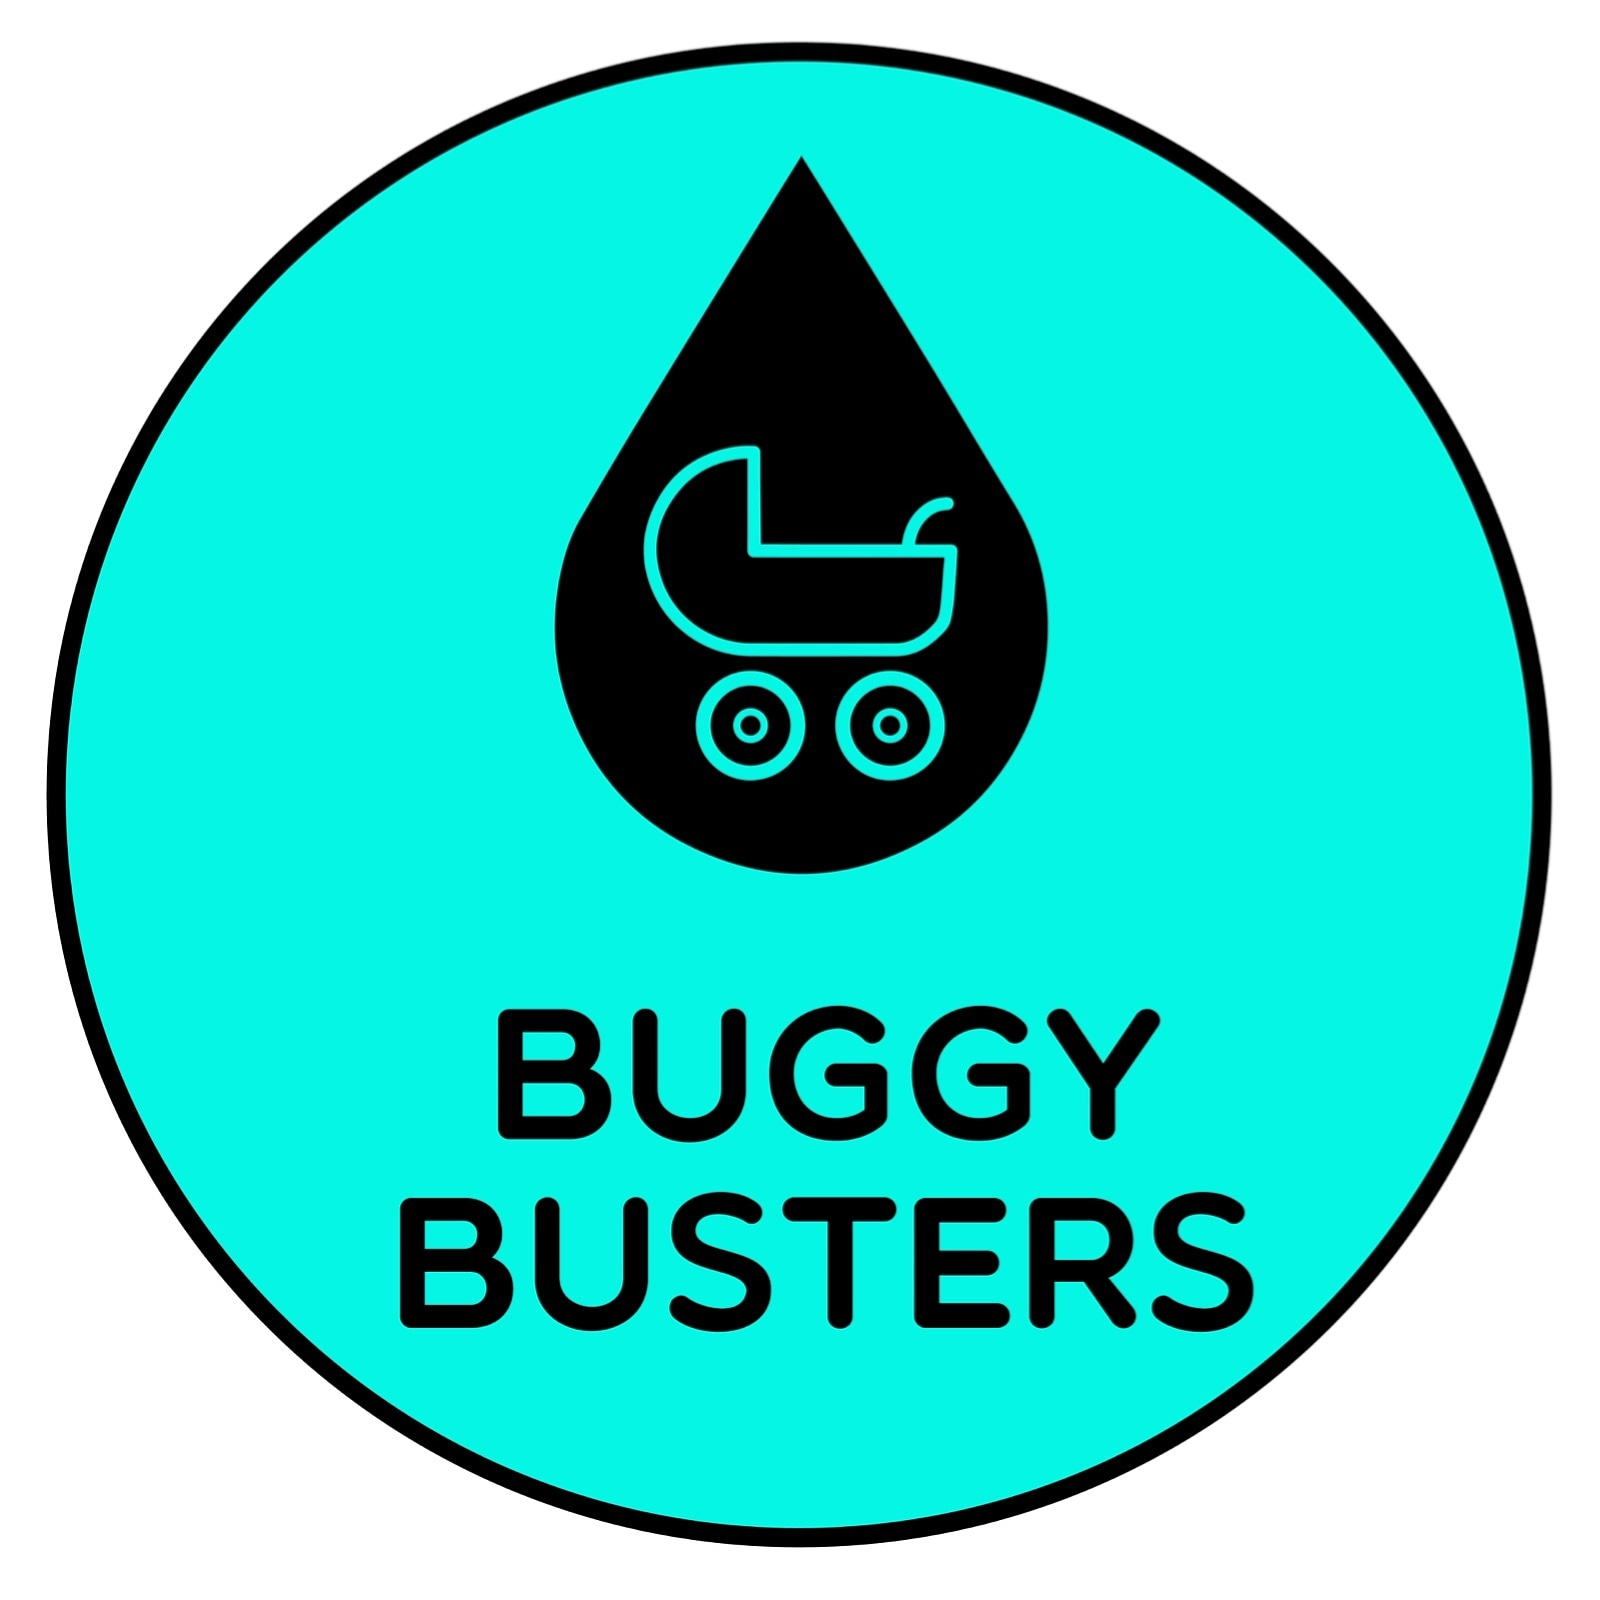 Buggy Busters Oxford 's logo